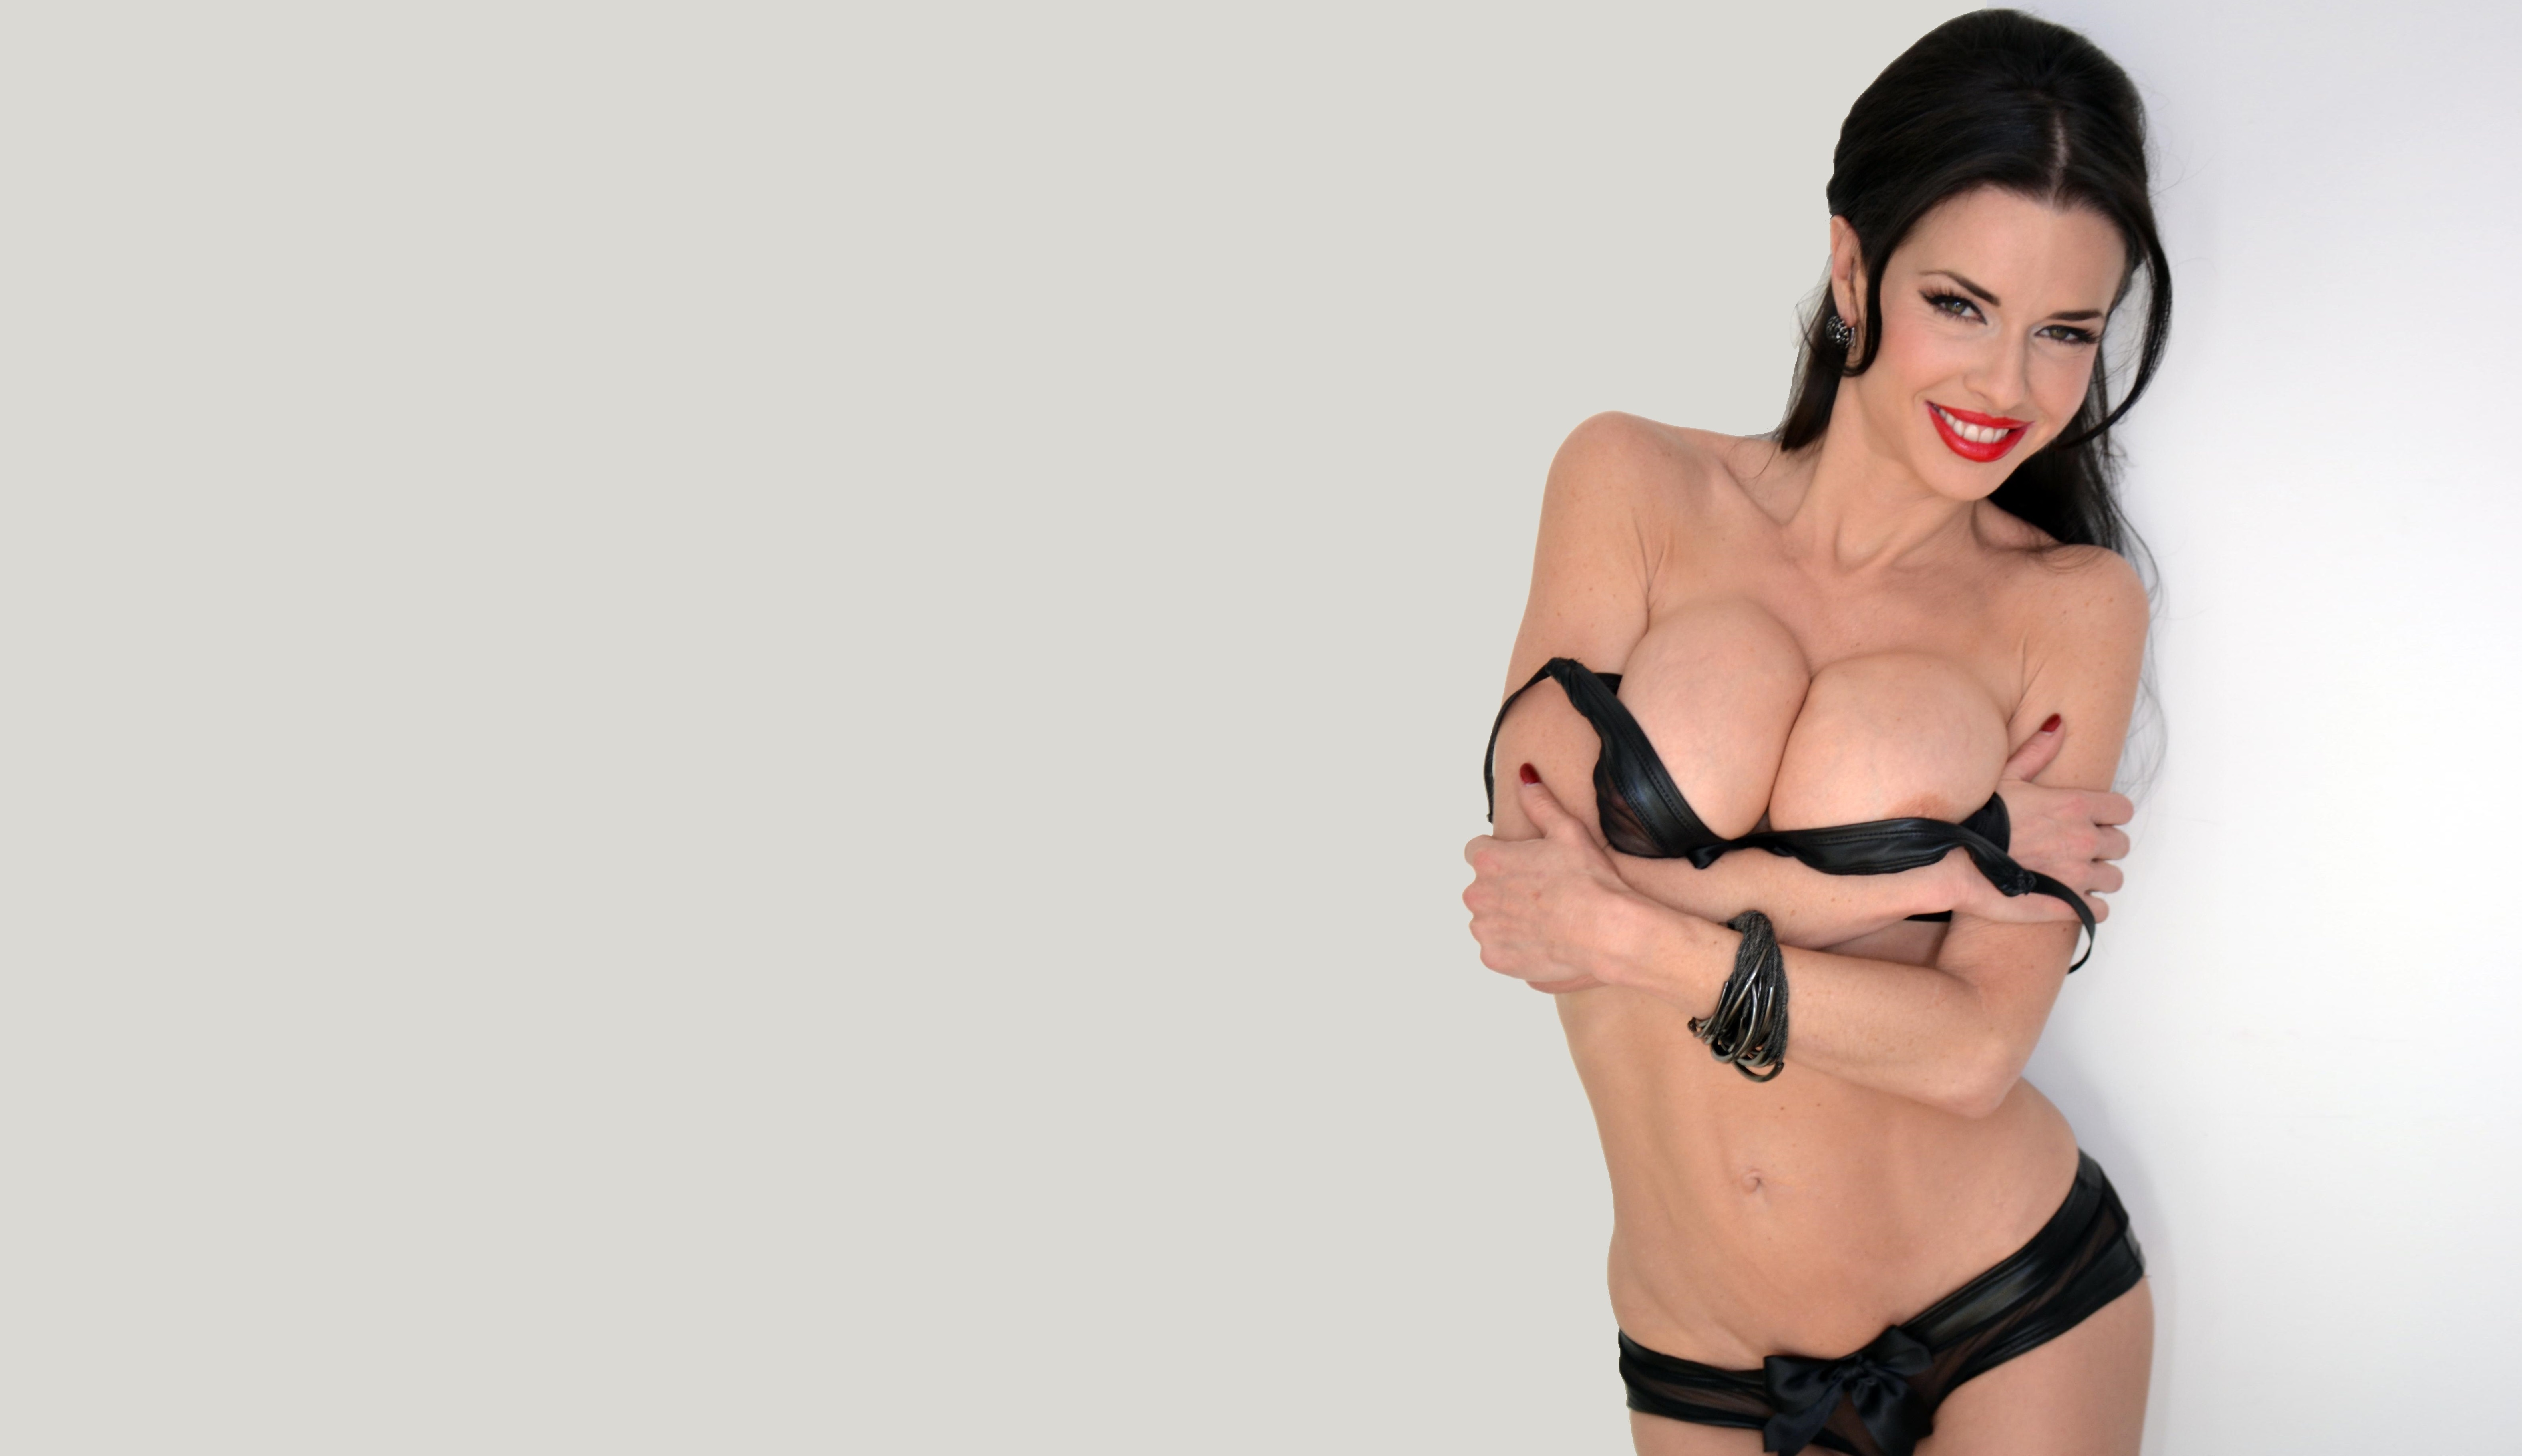 26 Veronica Avluv Hd Wallpapers And Photos Ftopxcom